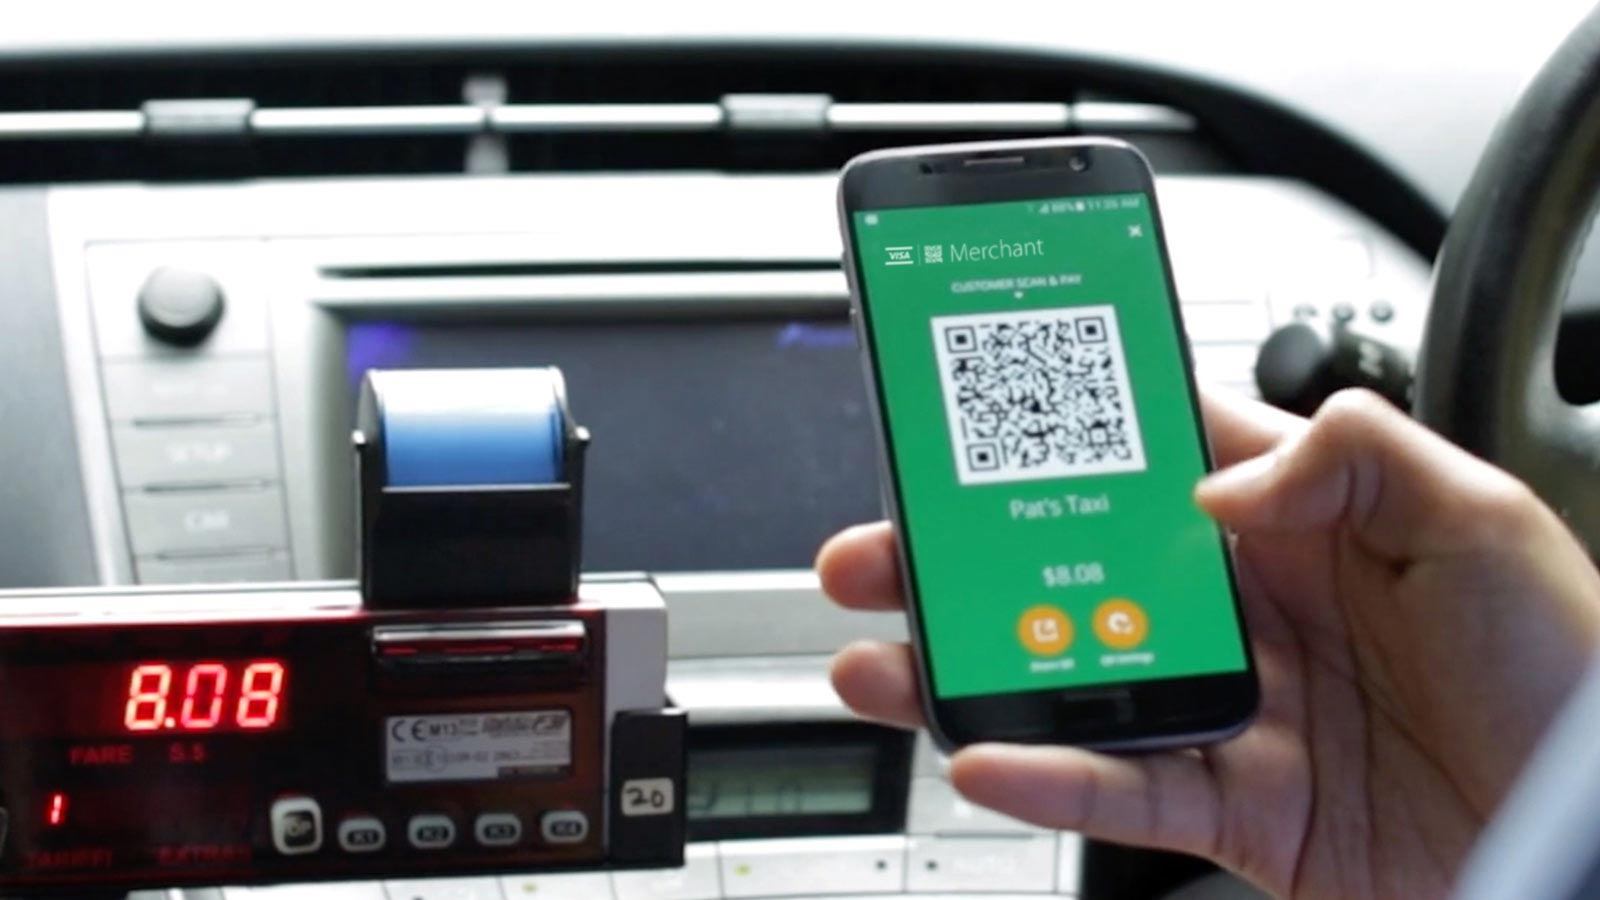 Gebruik Scan to pay in taxi's